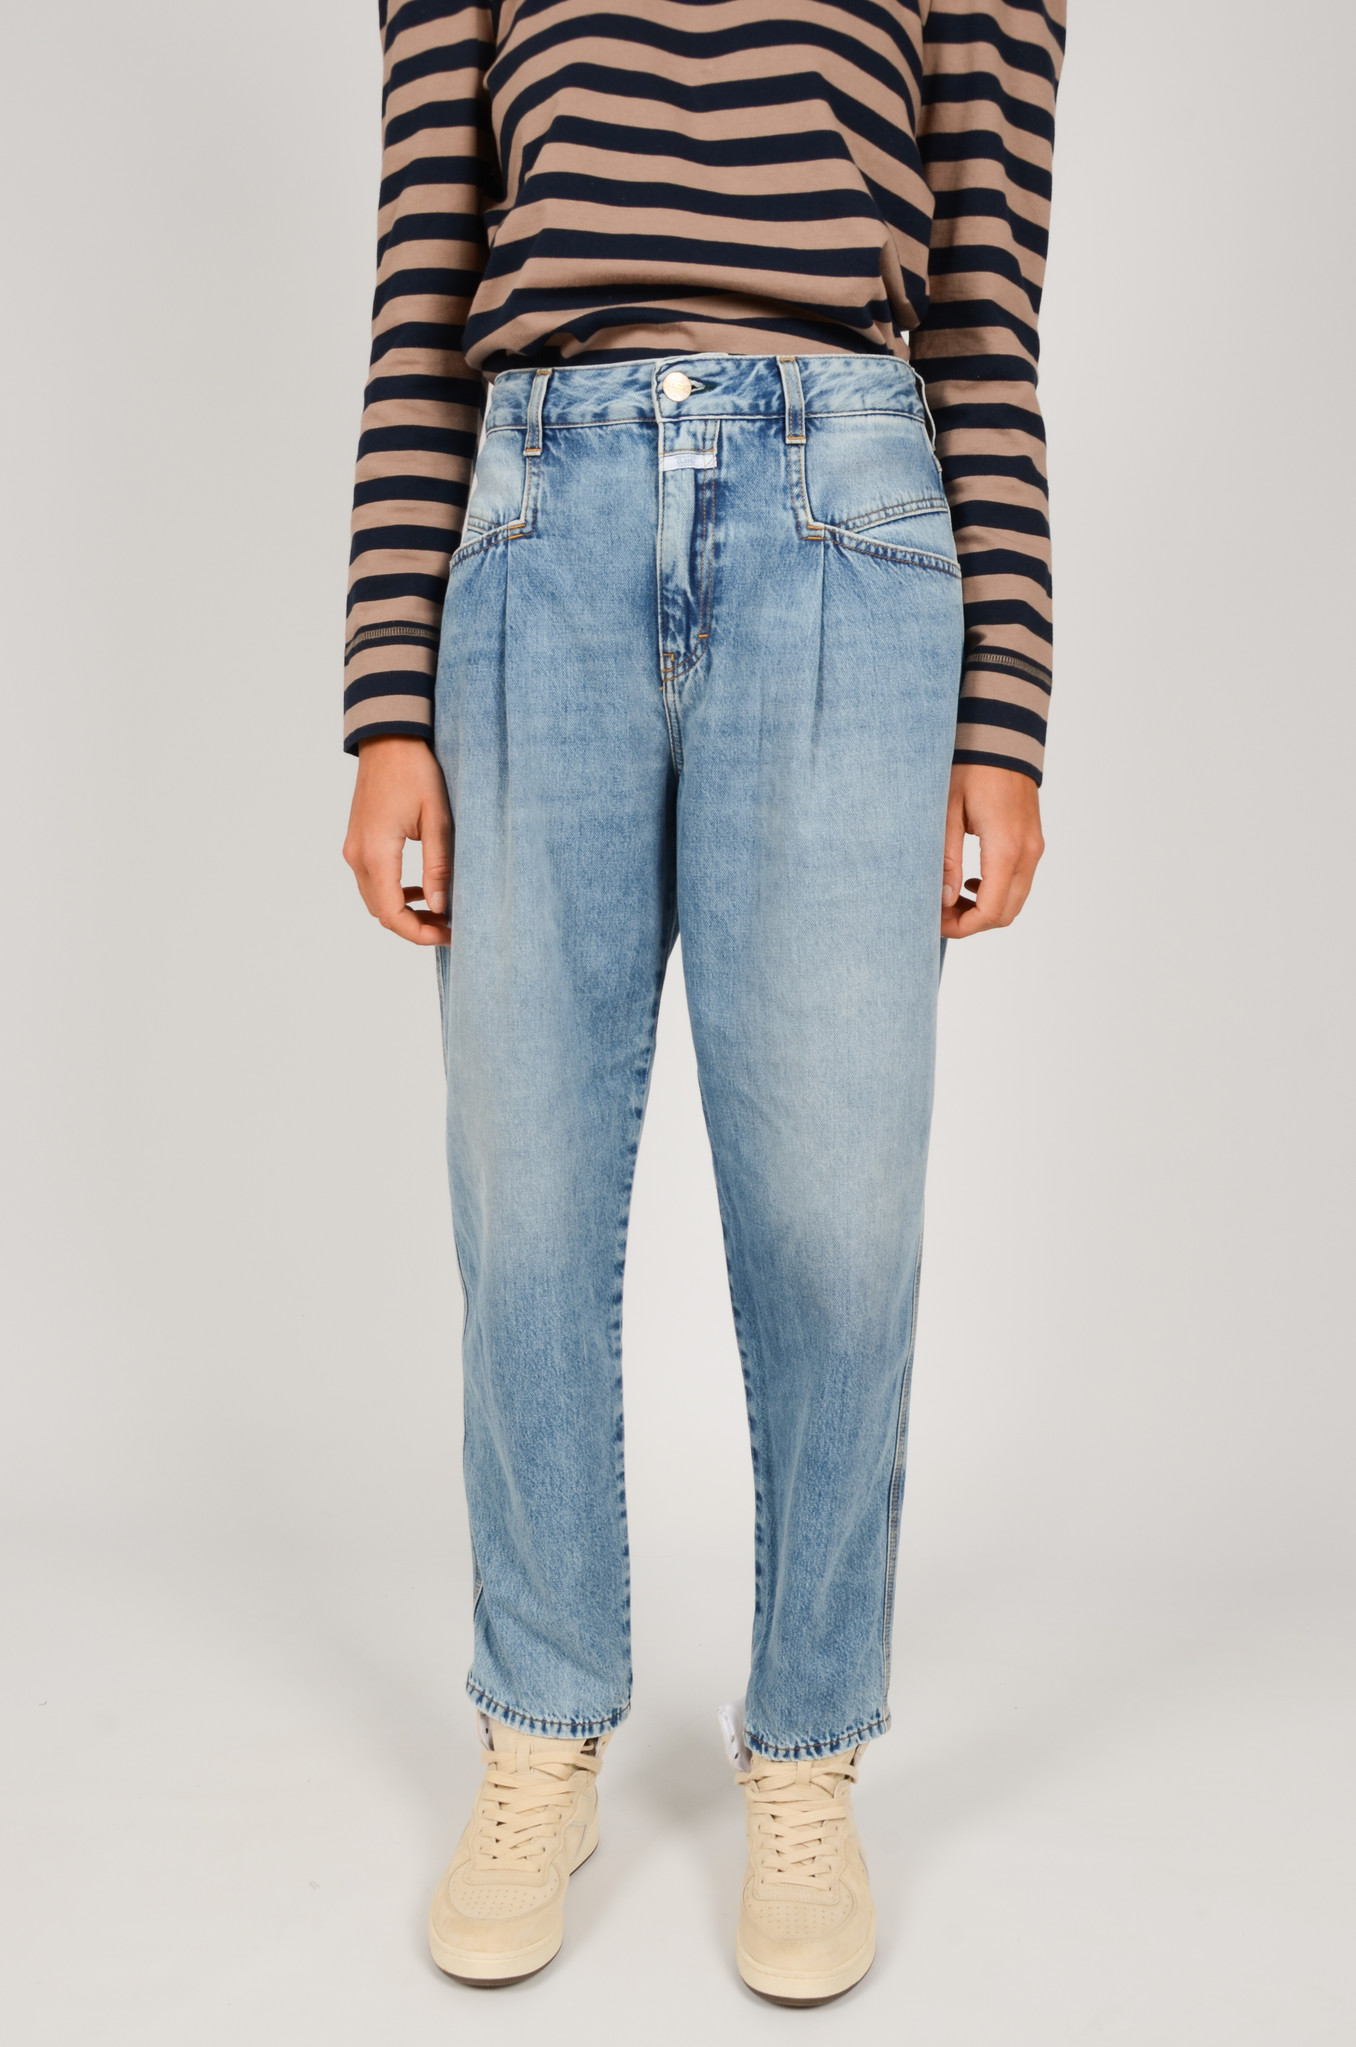 PEARL JEANS IN MID BLUE-1